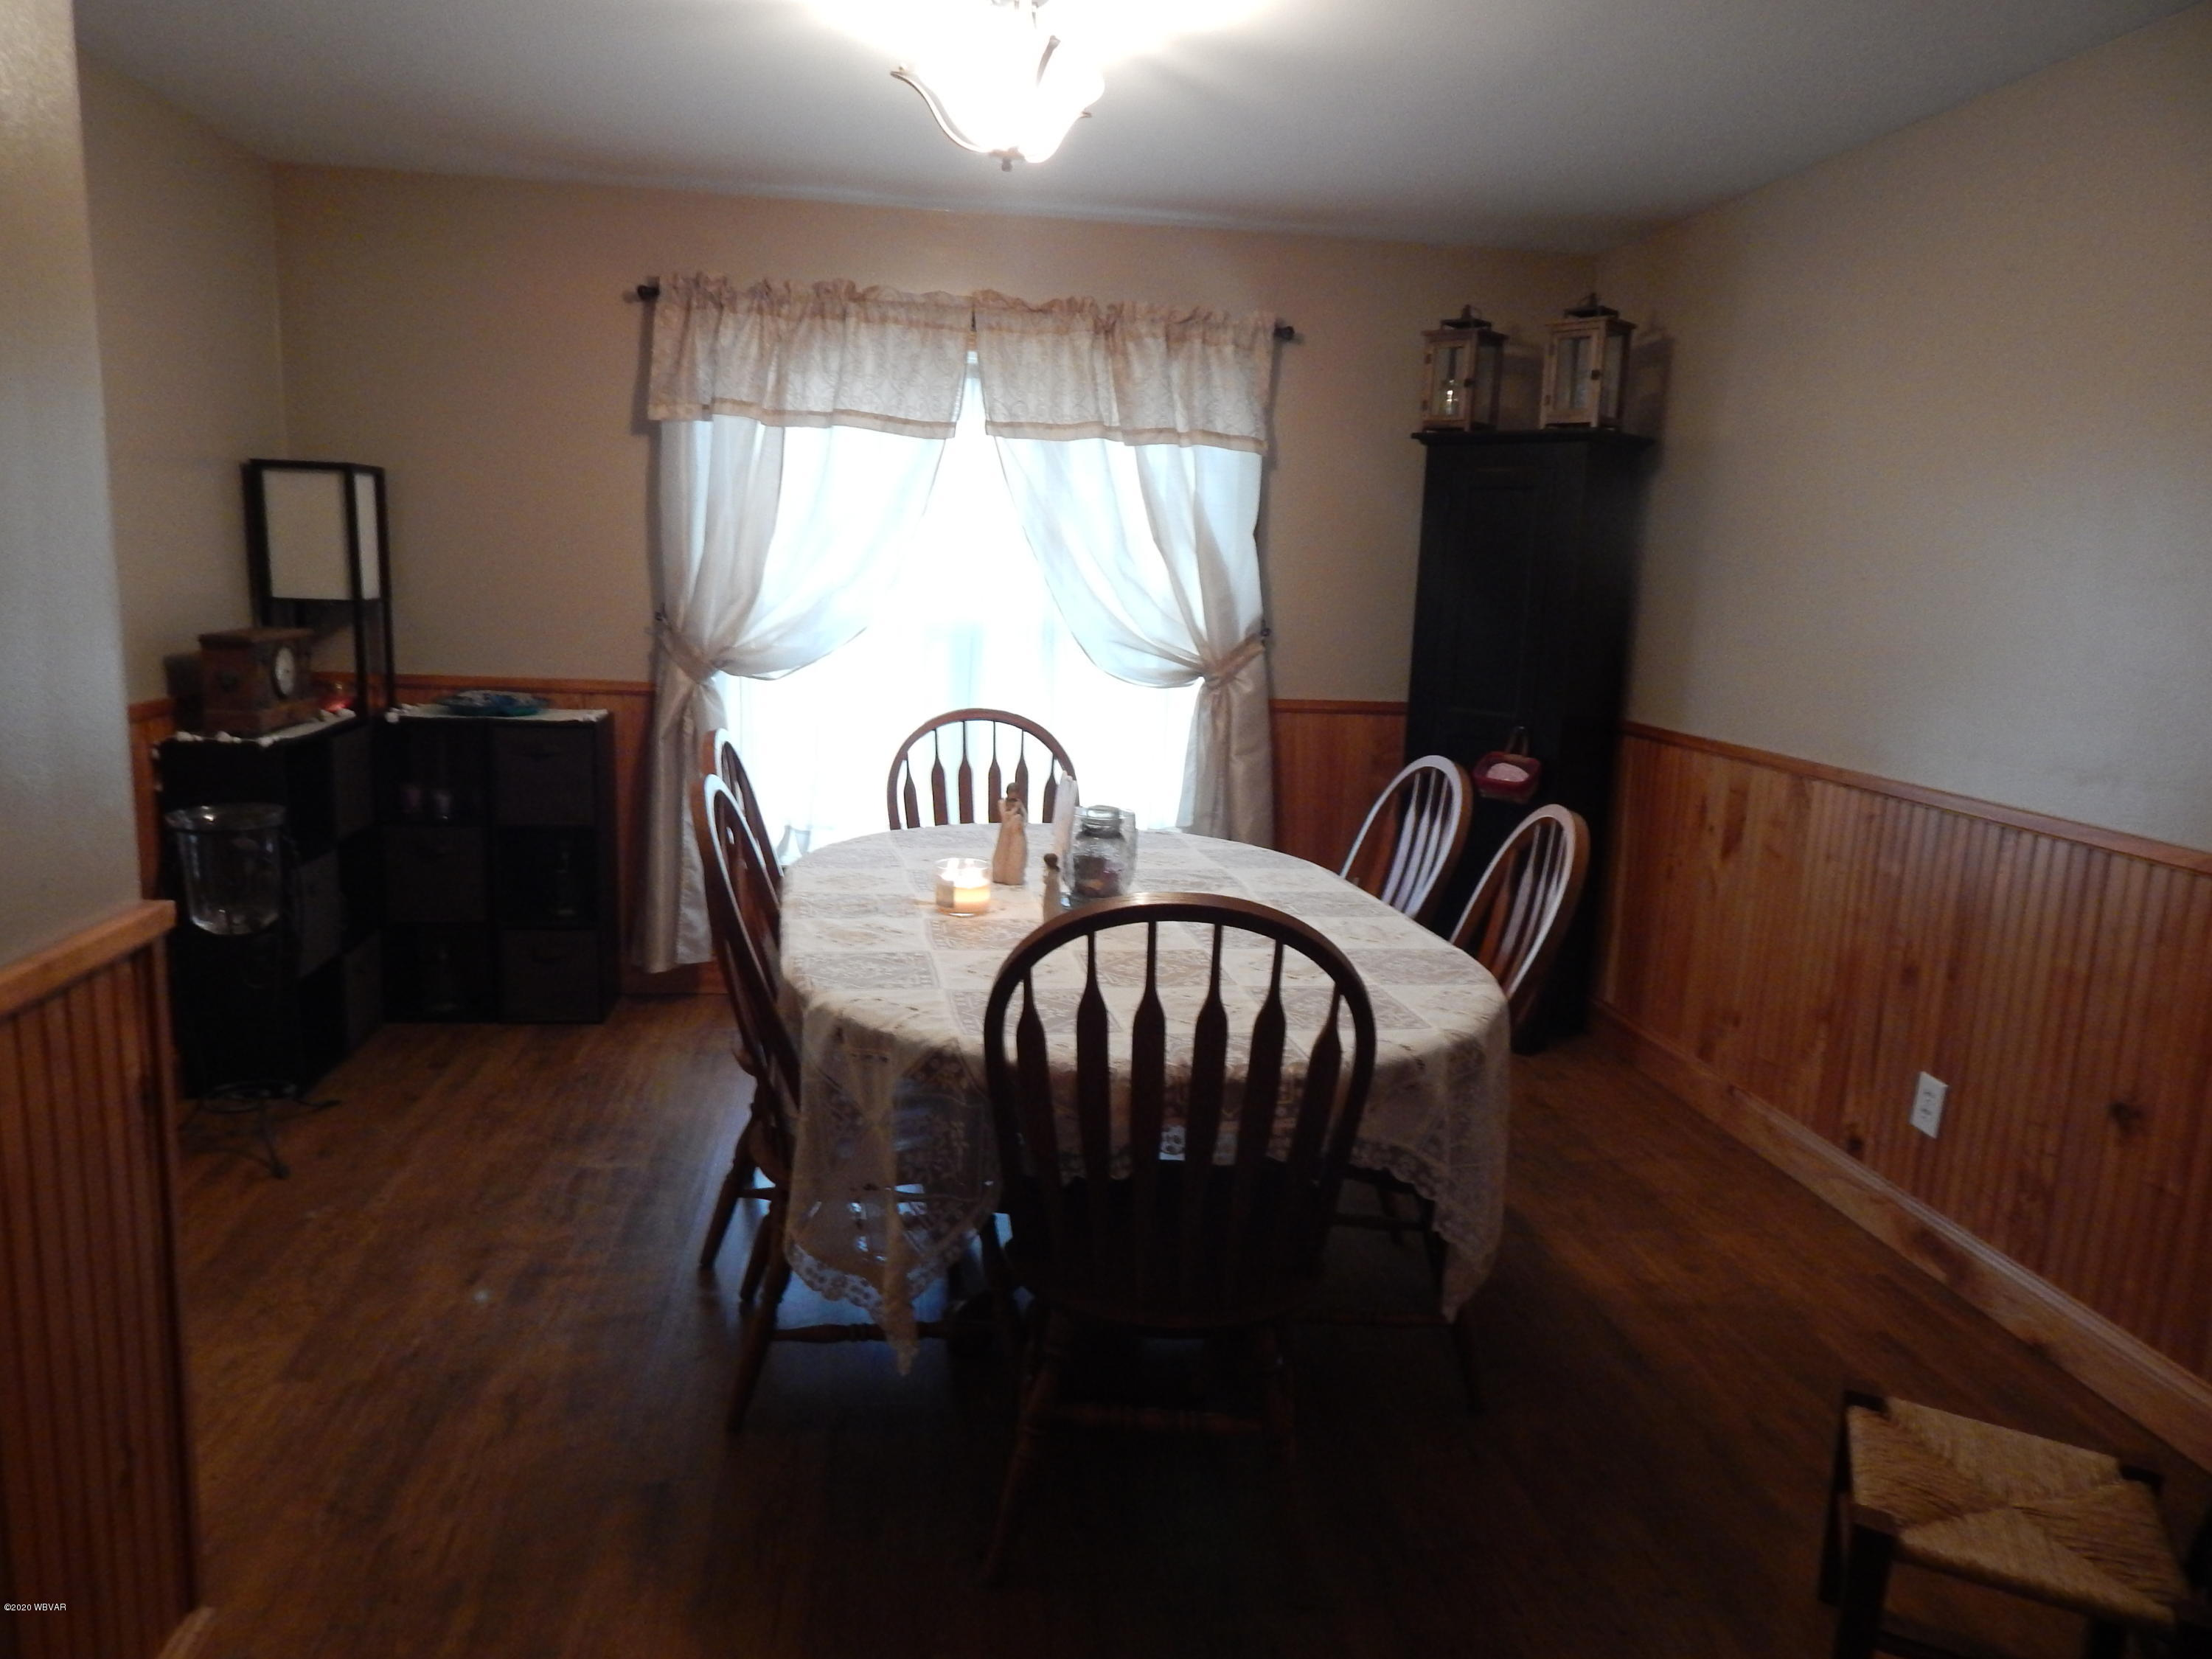 154 DEER VIEW ROAD, Unityville, PA 17774, 3 Bedrooms Bedrooms, ,2.5 BathroomsBathrooms,Residential,For sale,DEER VIEW,WB-91352